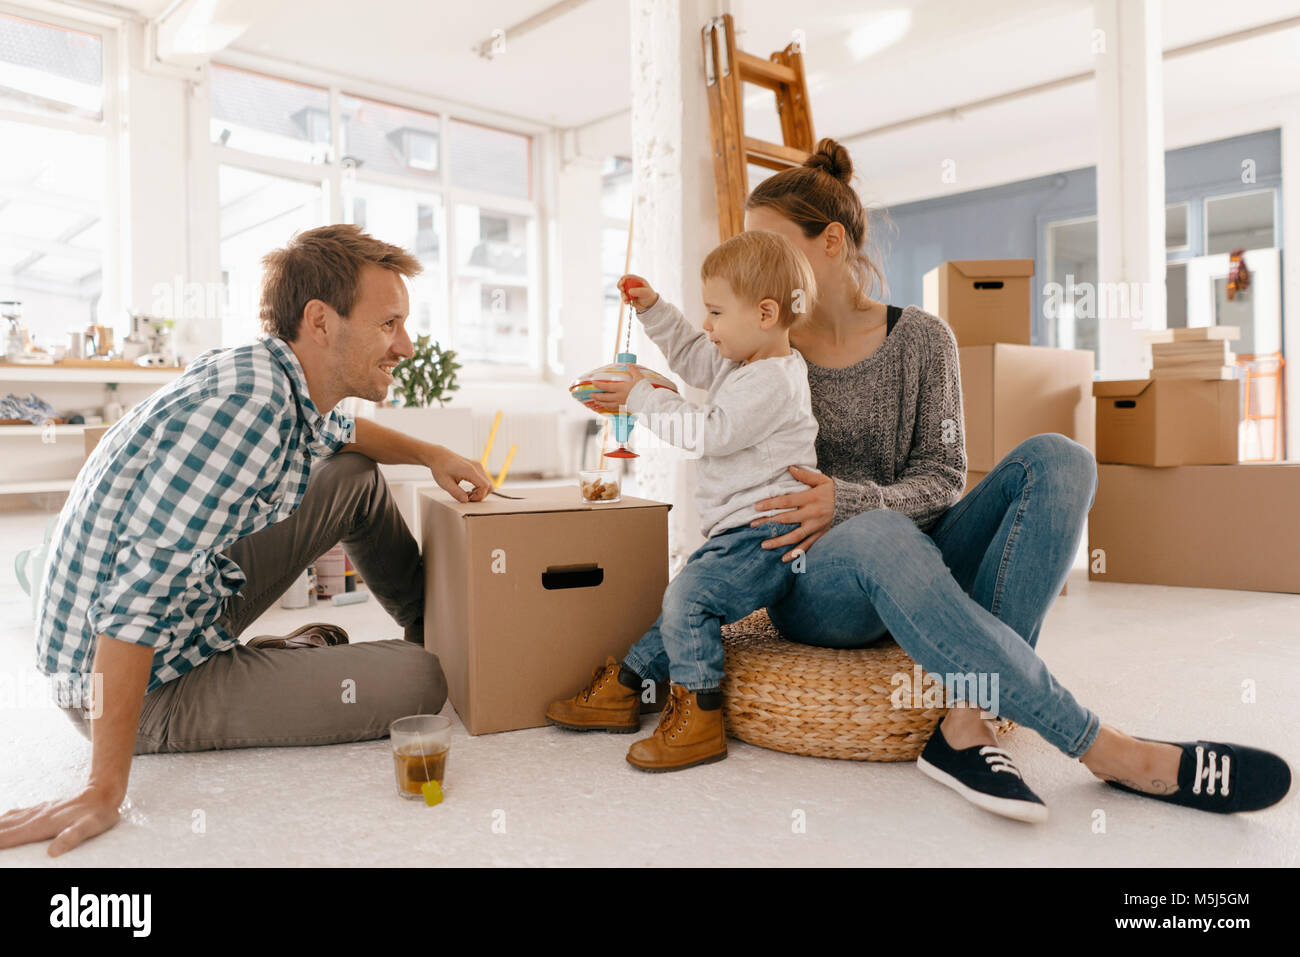 Happy Family moving into new home Photo Stock